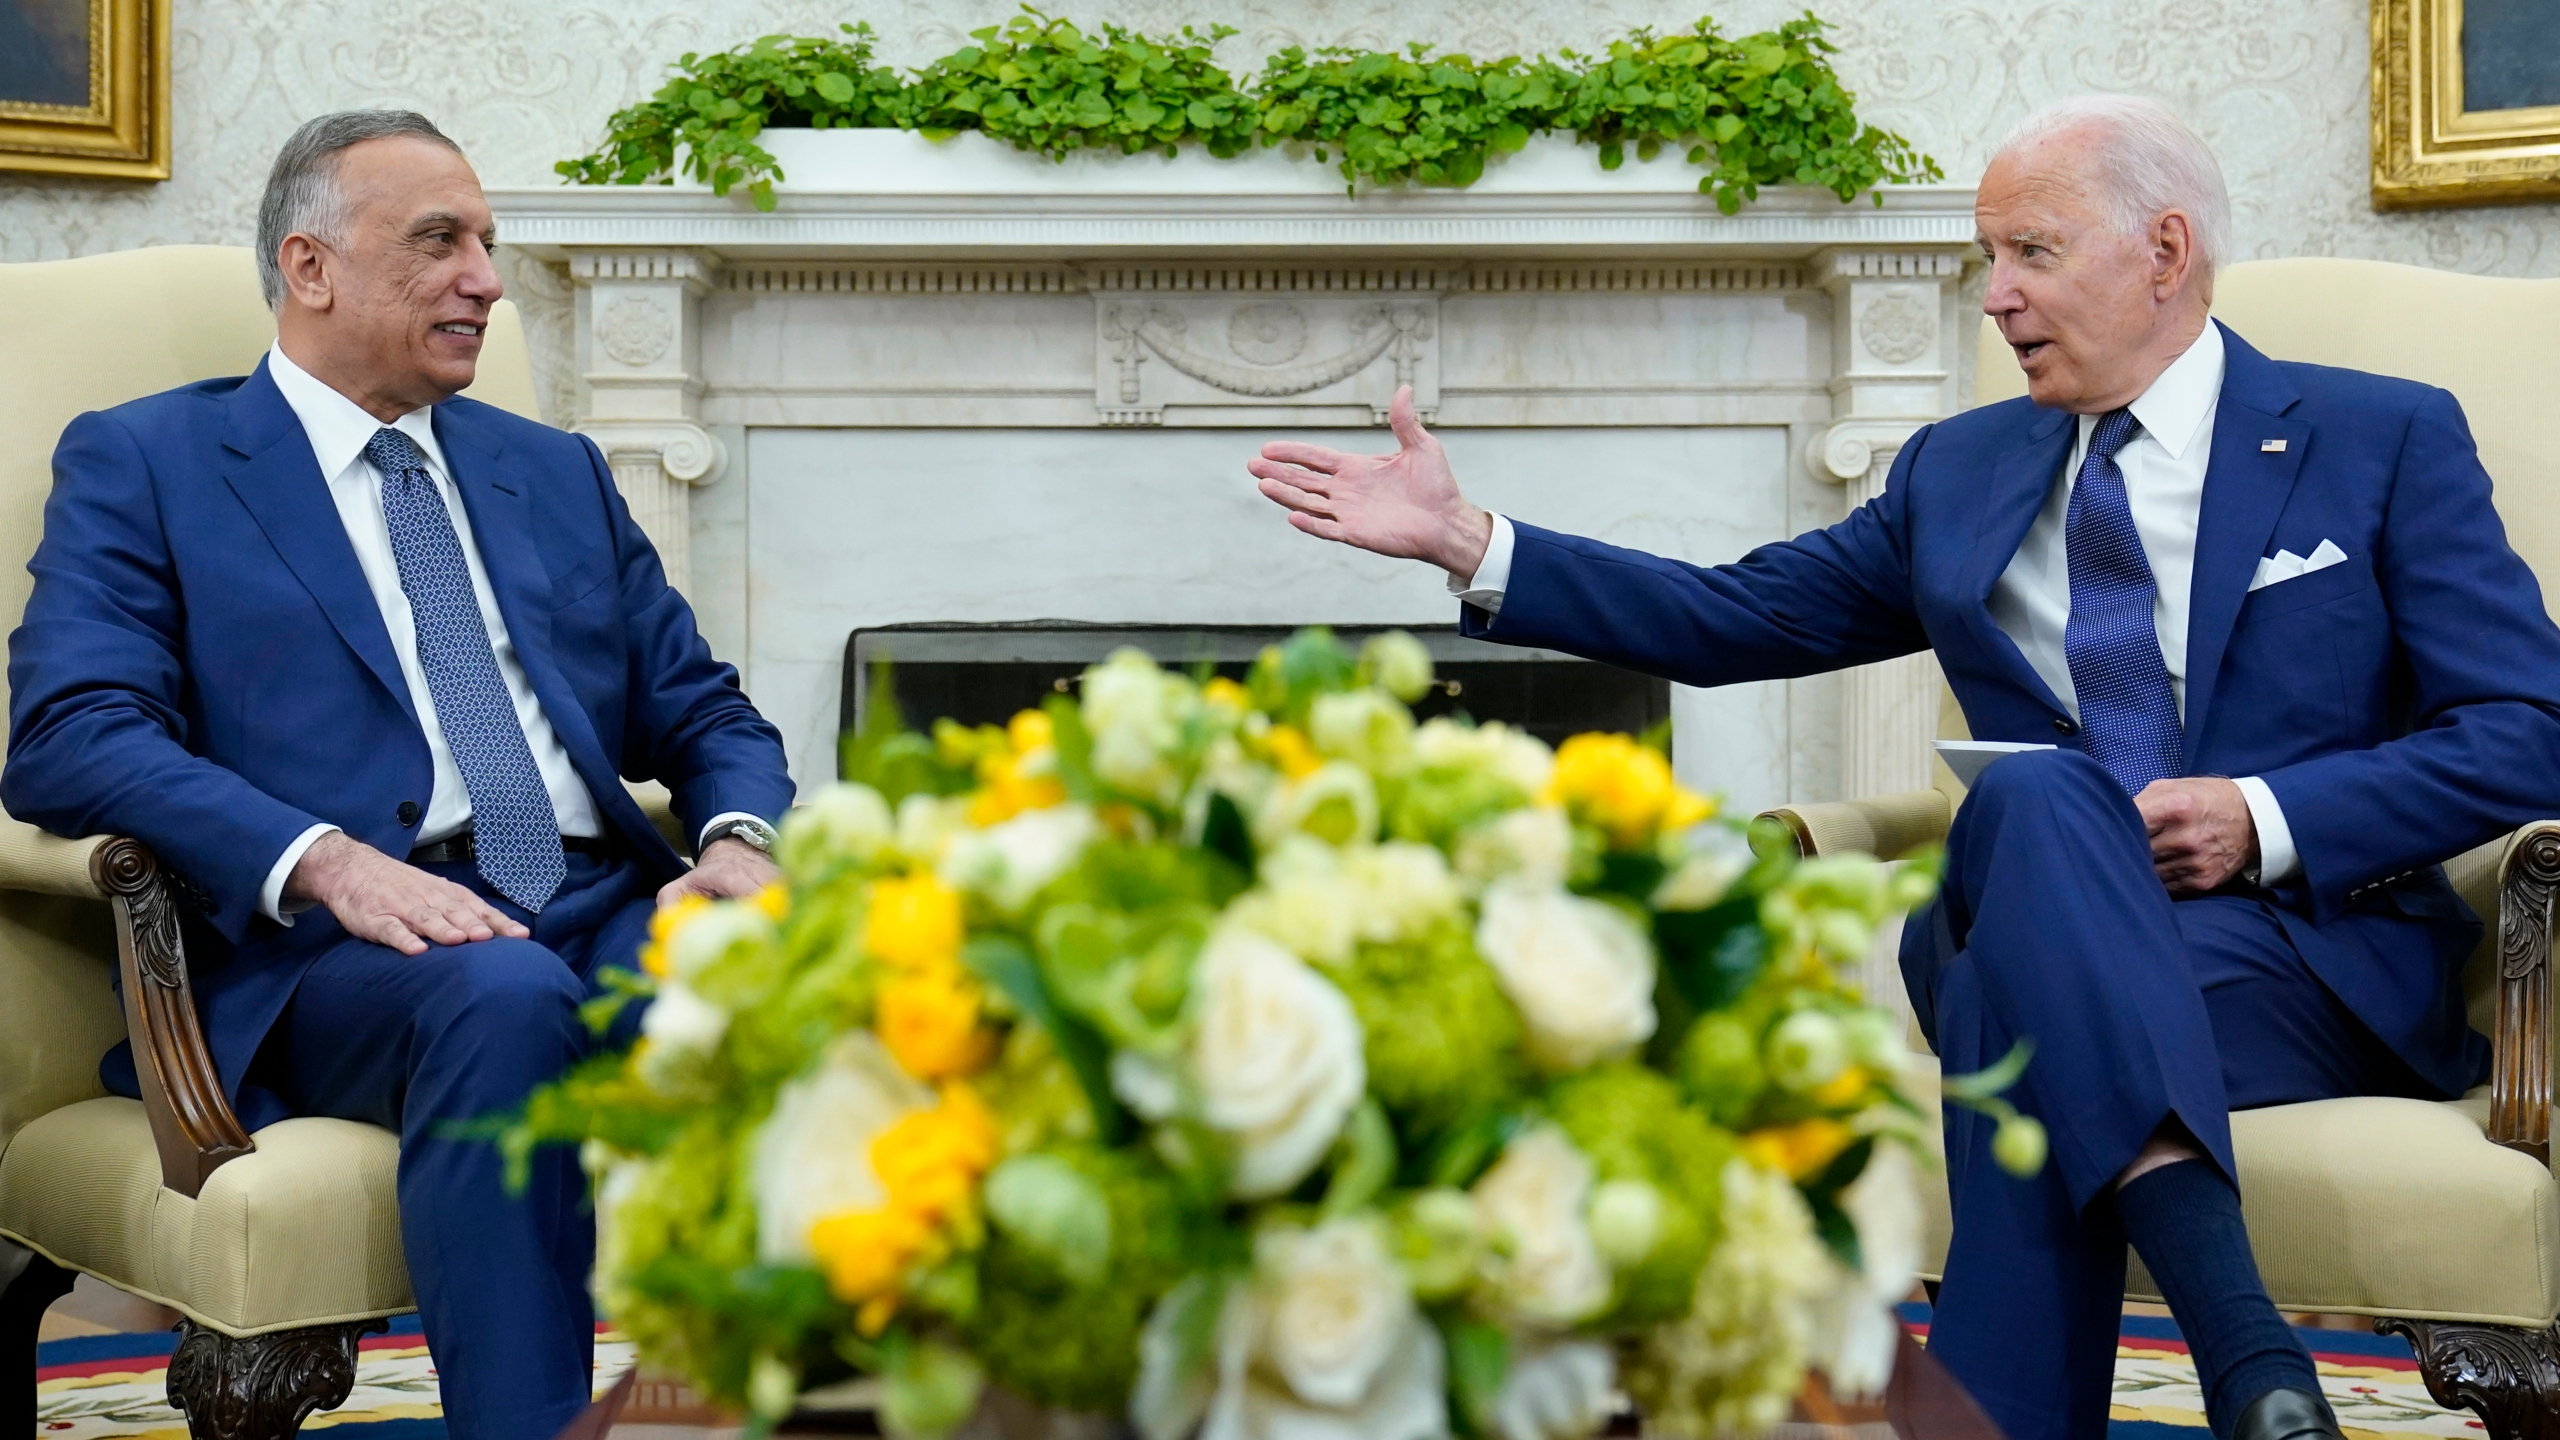 President Joe Biden, right, speaks as Iraqi Prime Minister Mustafa al-Kadhimi, left, listens during their meeting in the Oval Office of the White House in Washington on July 26, 2021. (AP Photo/Susan Walsh)